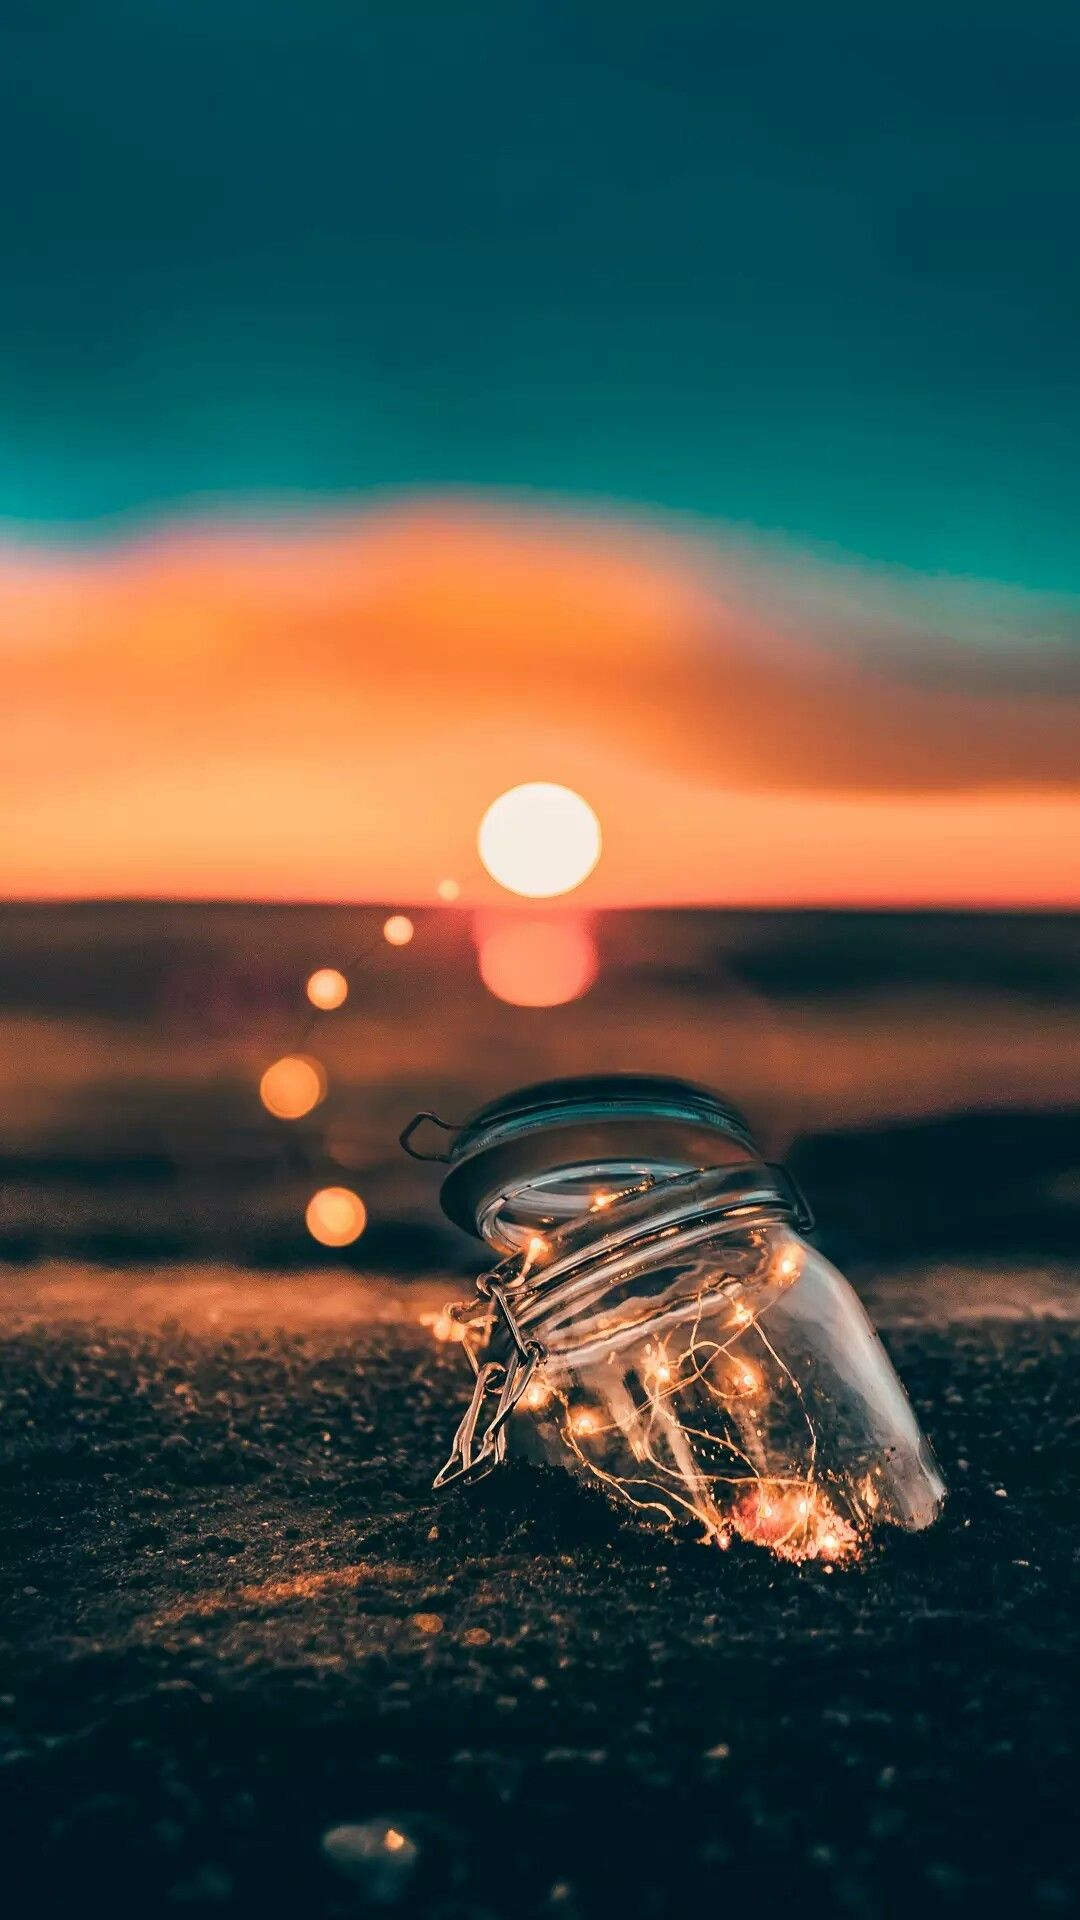 Jar And Light Iphone Wallpaper Photography Cute Wallpaper